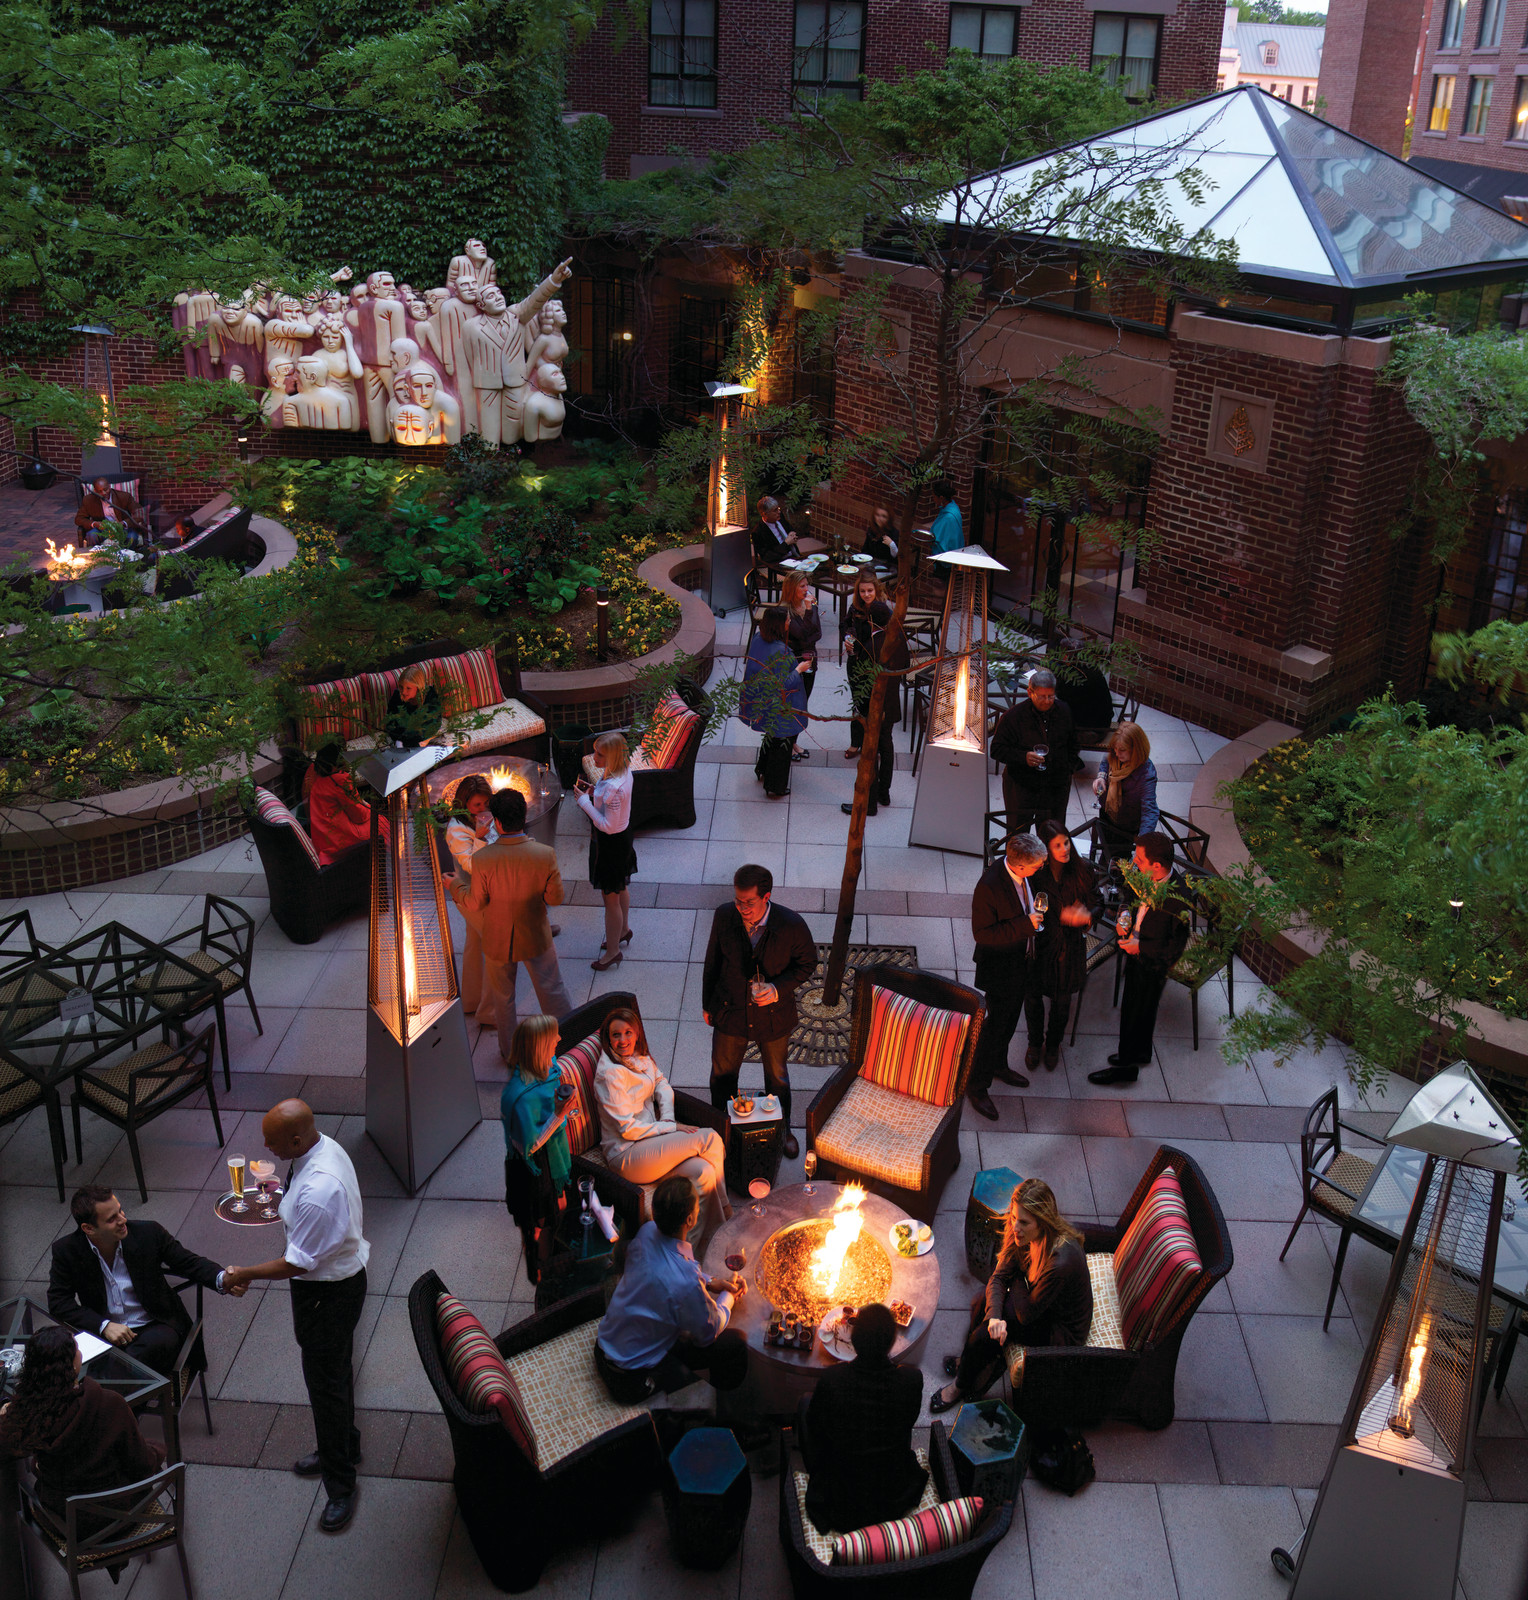 The Four Seasons' temple to red meat and whiskey has four—count 'em, four—patios where you can sip and smoke all winter. (Image: Courtesy The Four Seasons)